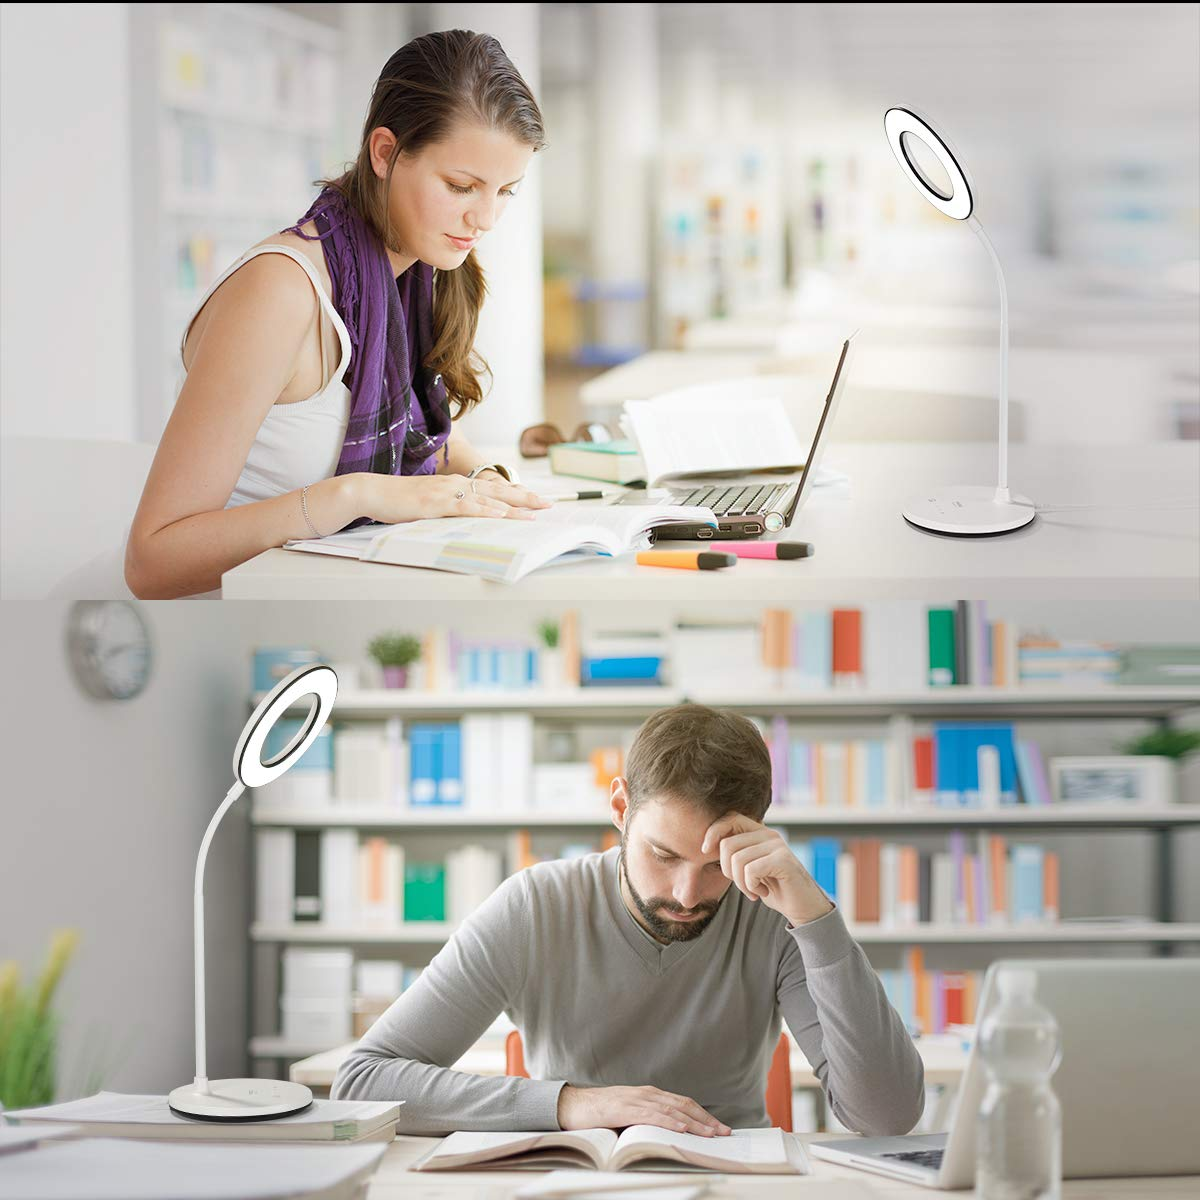 Miady LED Desk Lamp - Best LED Desk Lamp with Gooseneck, Bulb, Touch Color Sensitive, Round Design, 3 Color Moder, 4 Level Brightness